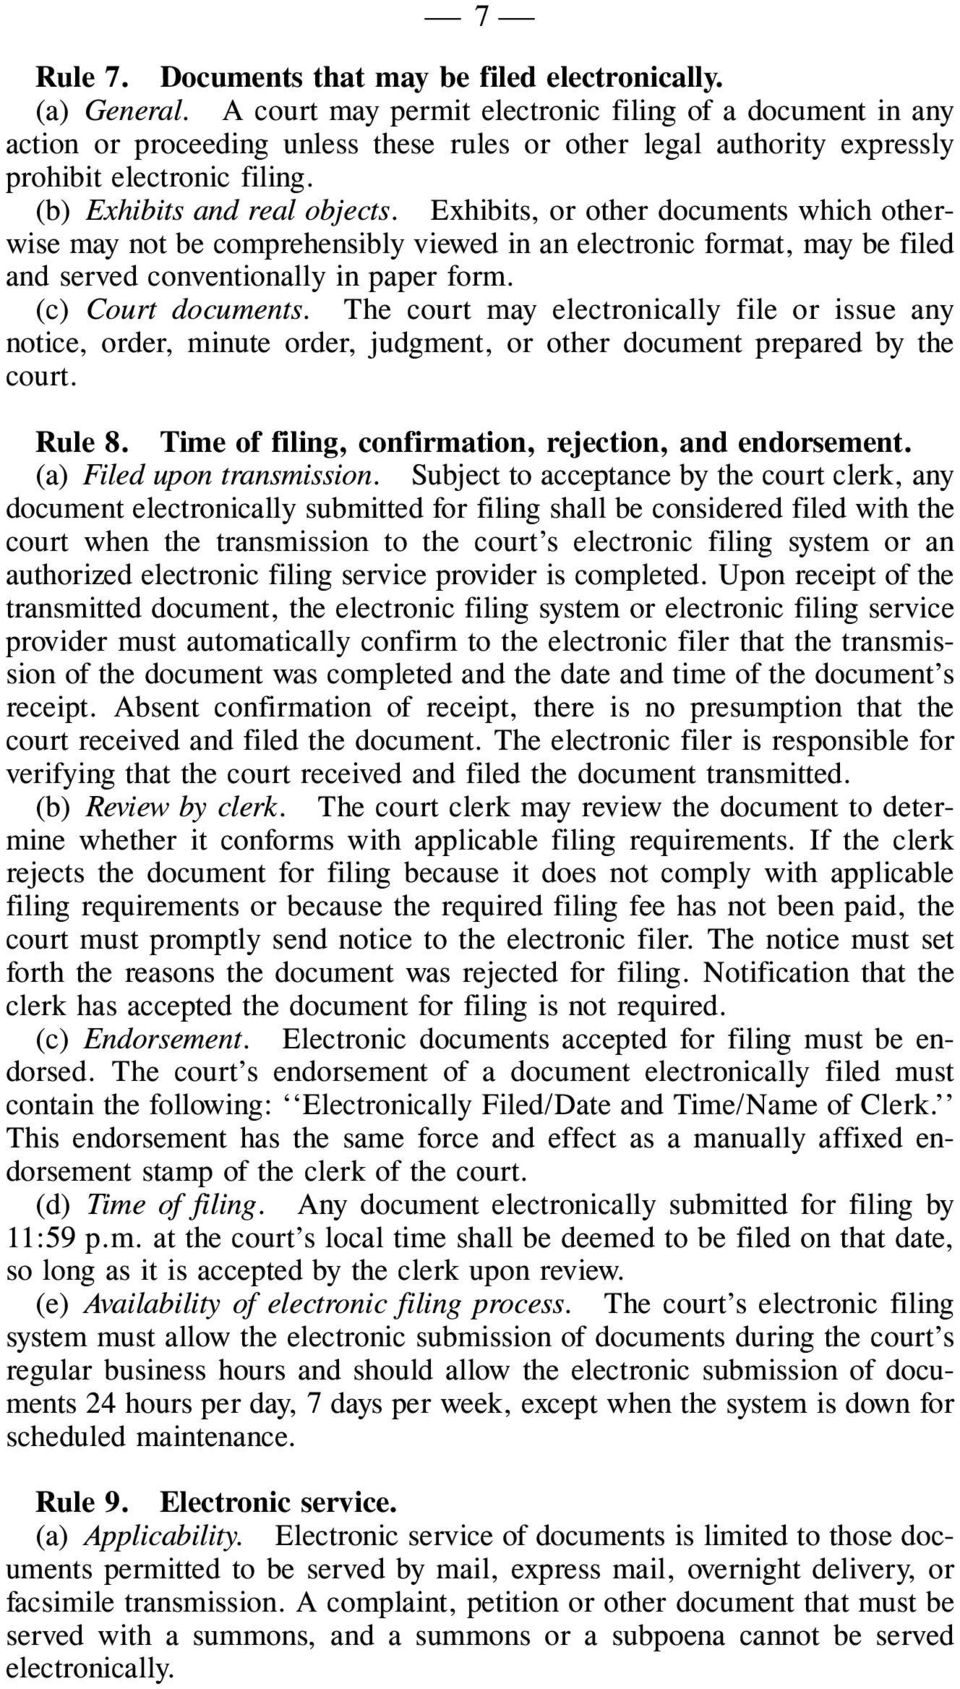 Exhibits, or other documents which otherwise may not be comprehensibly viewed in an electronic format, may be filed and served conventionally in paper form. (c) Court documents.